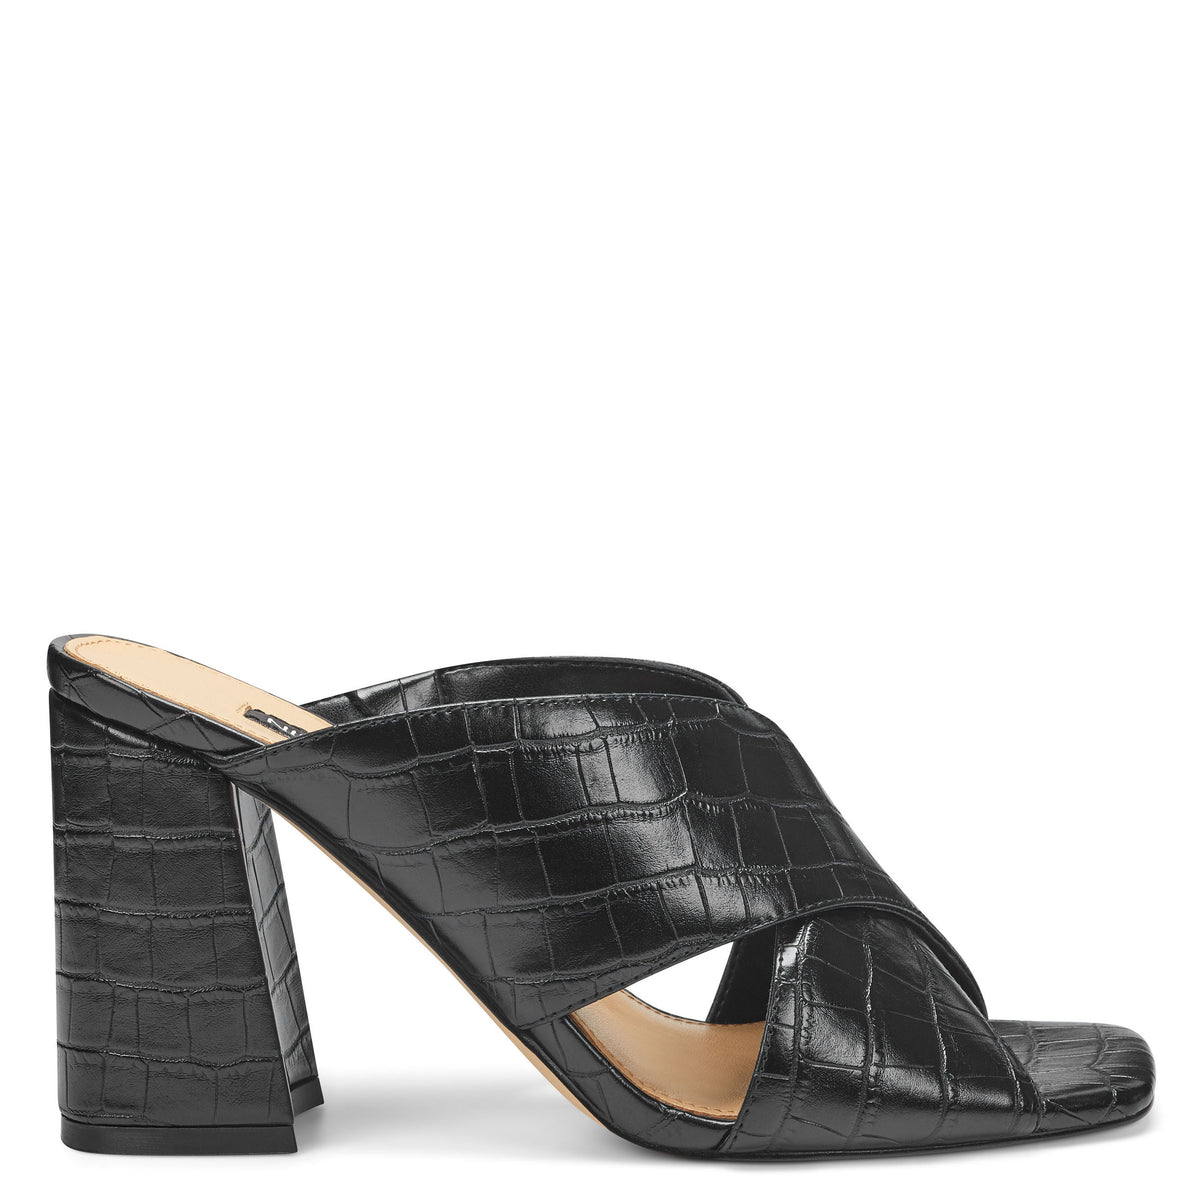 gigi-block-heel-slide-sandals-in-black-embossed-croco